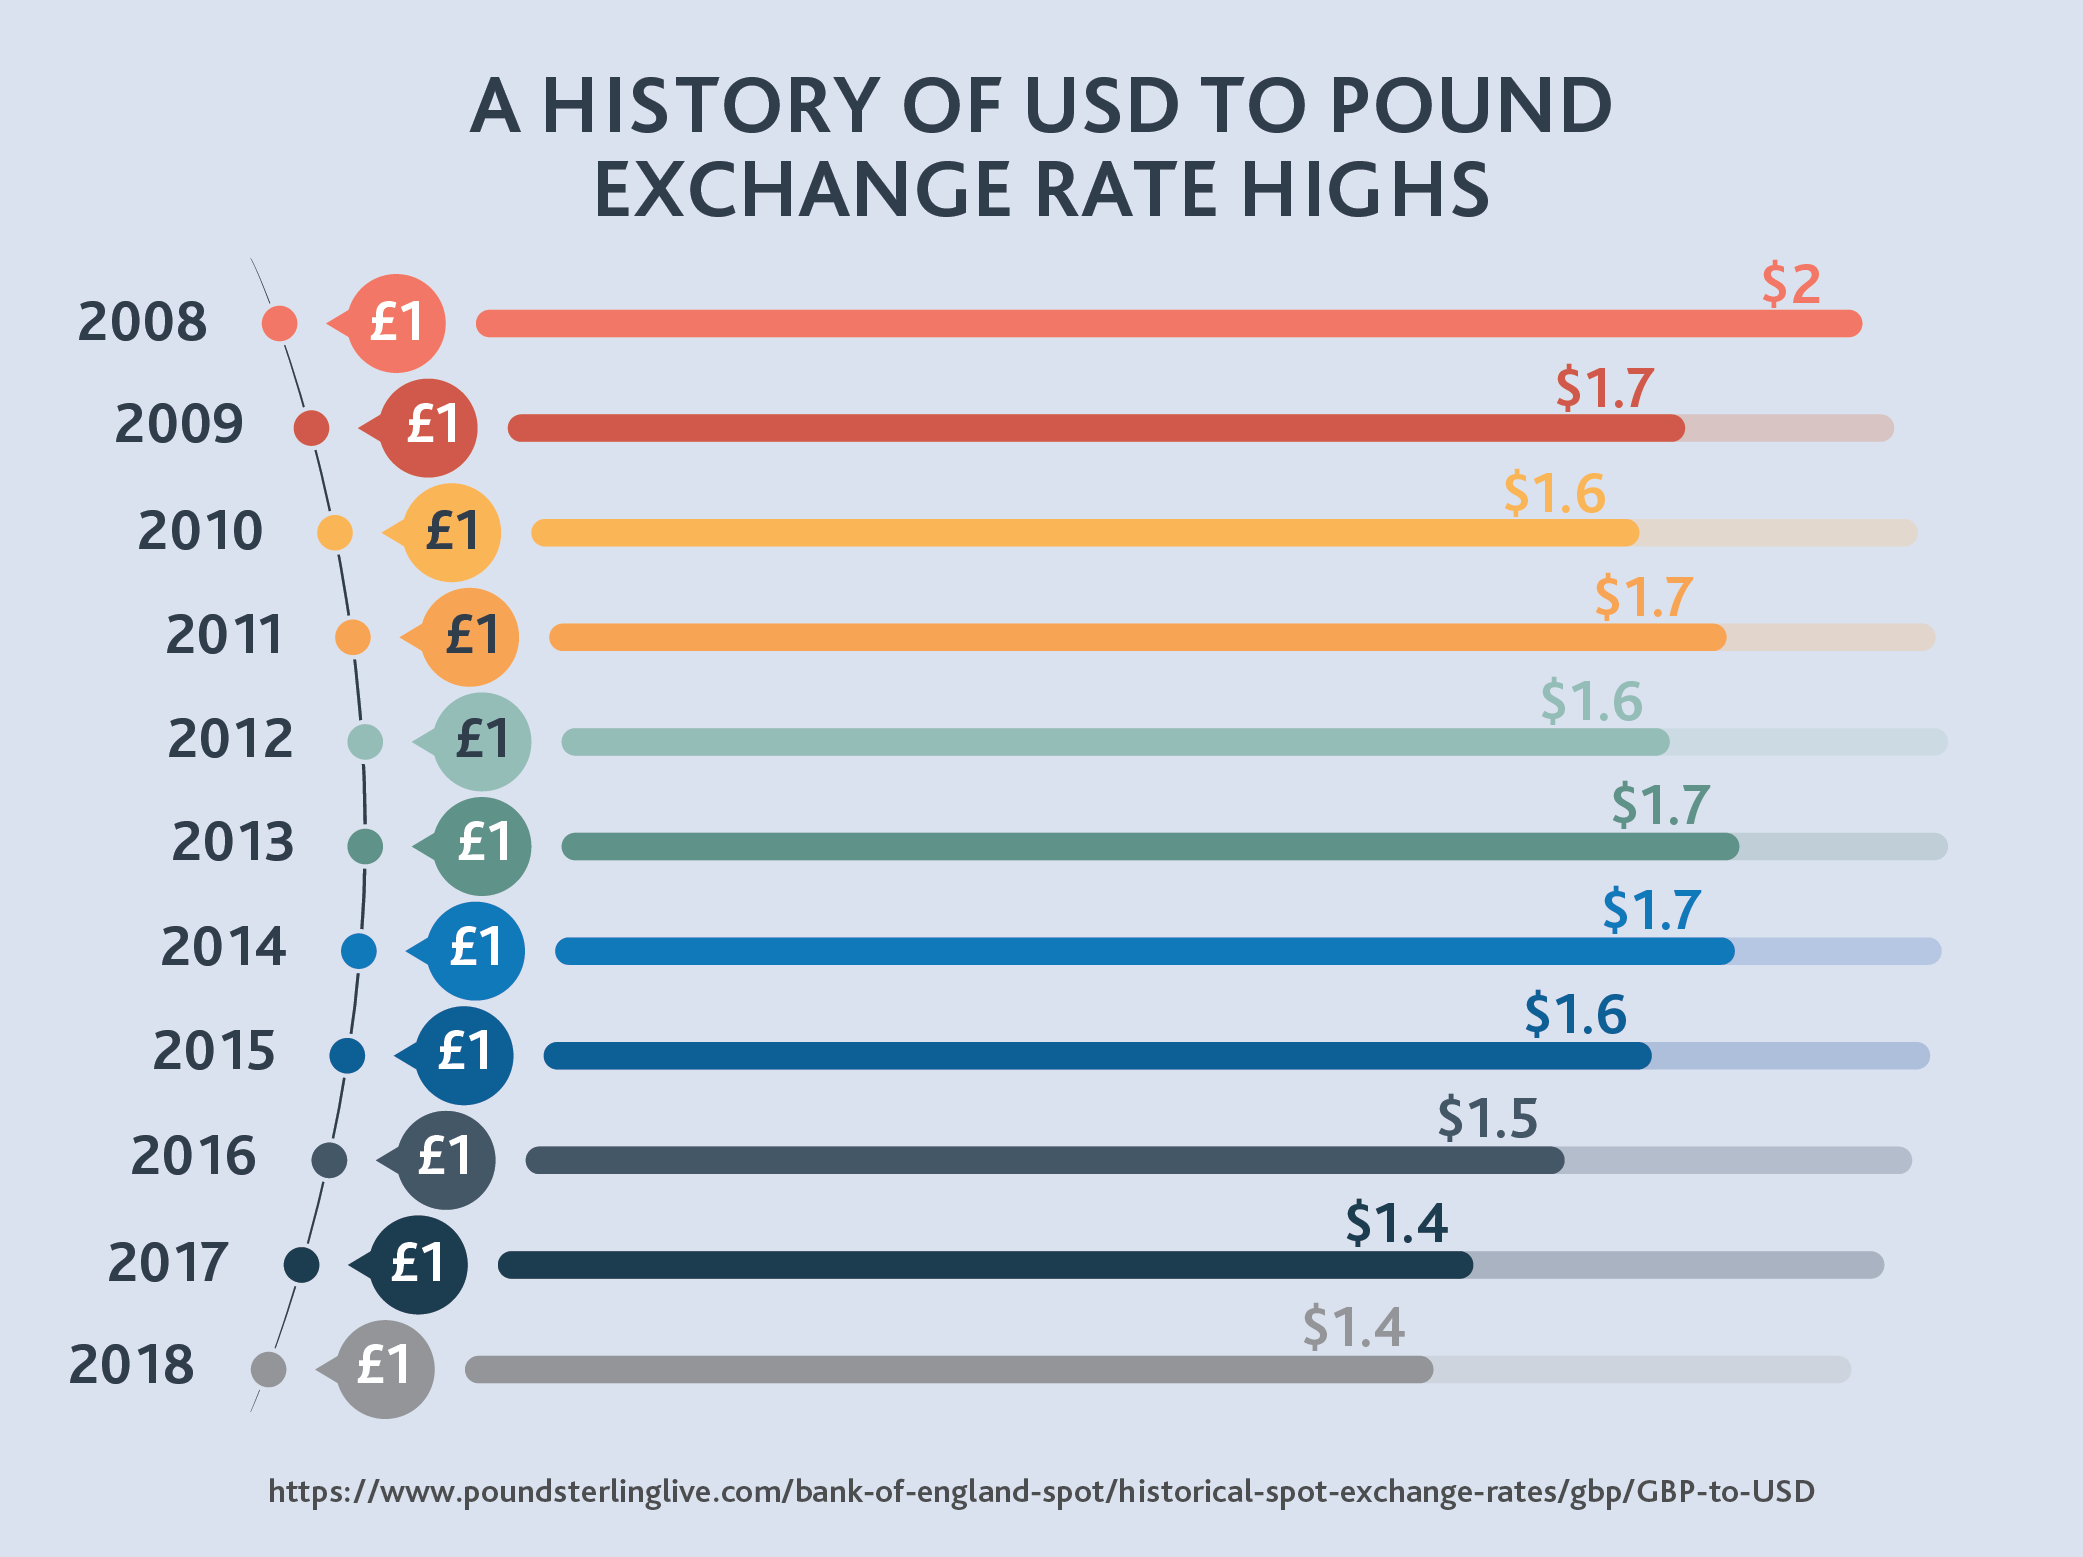 A History of USD to Pound Exchange Rate Highs